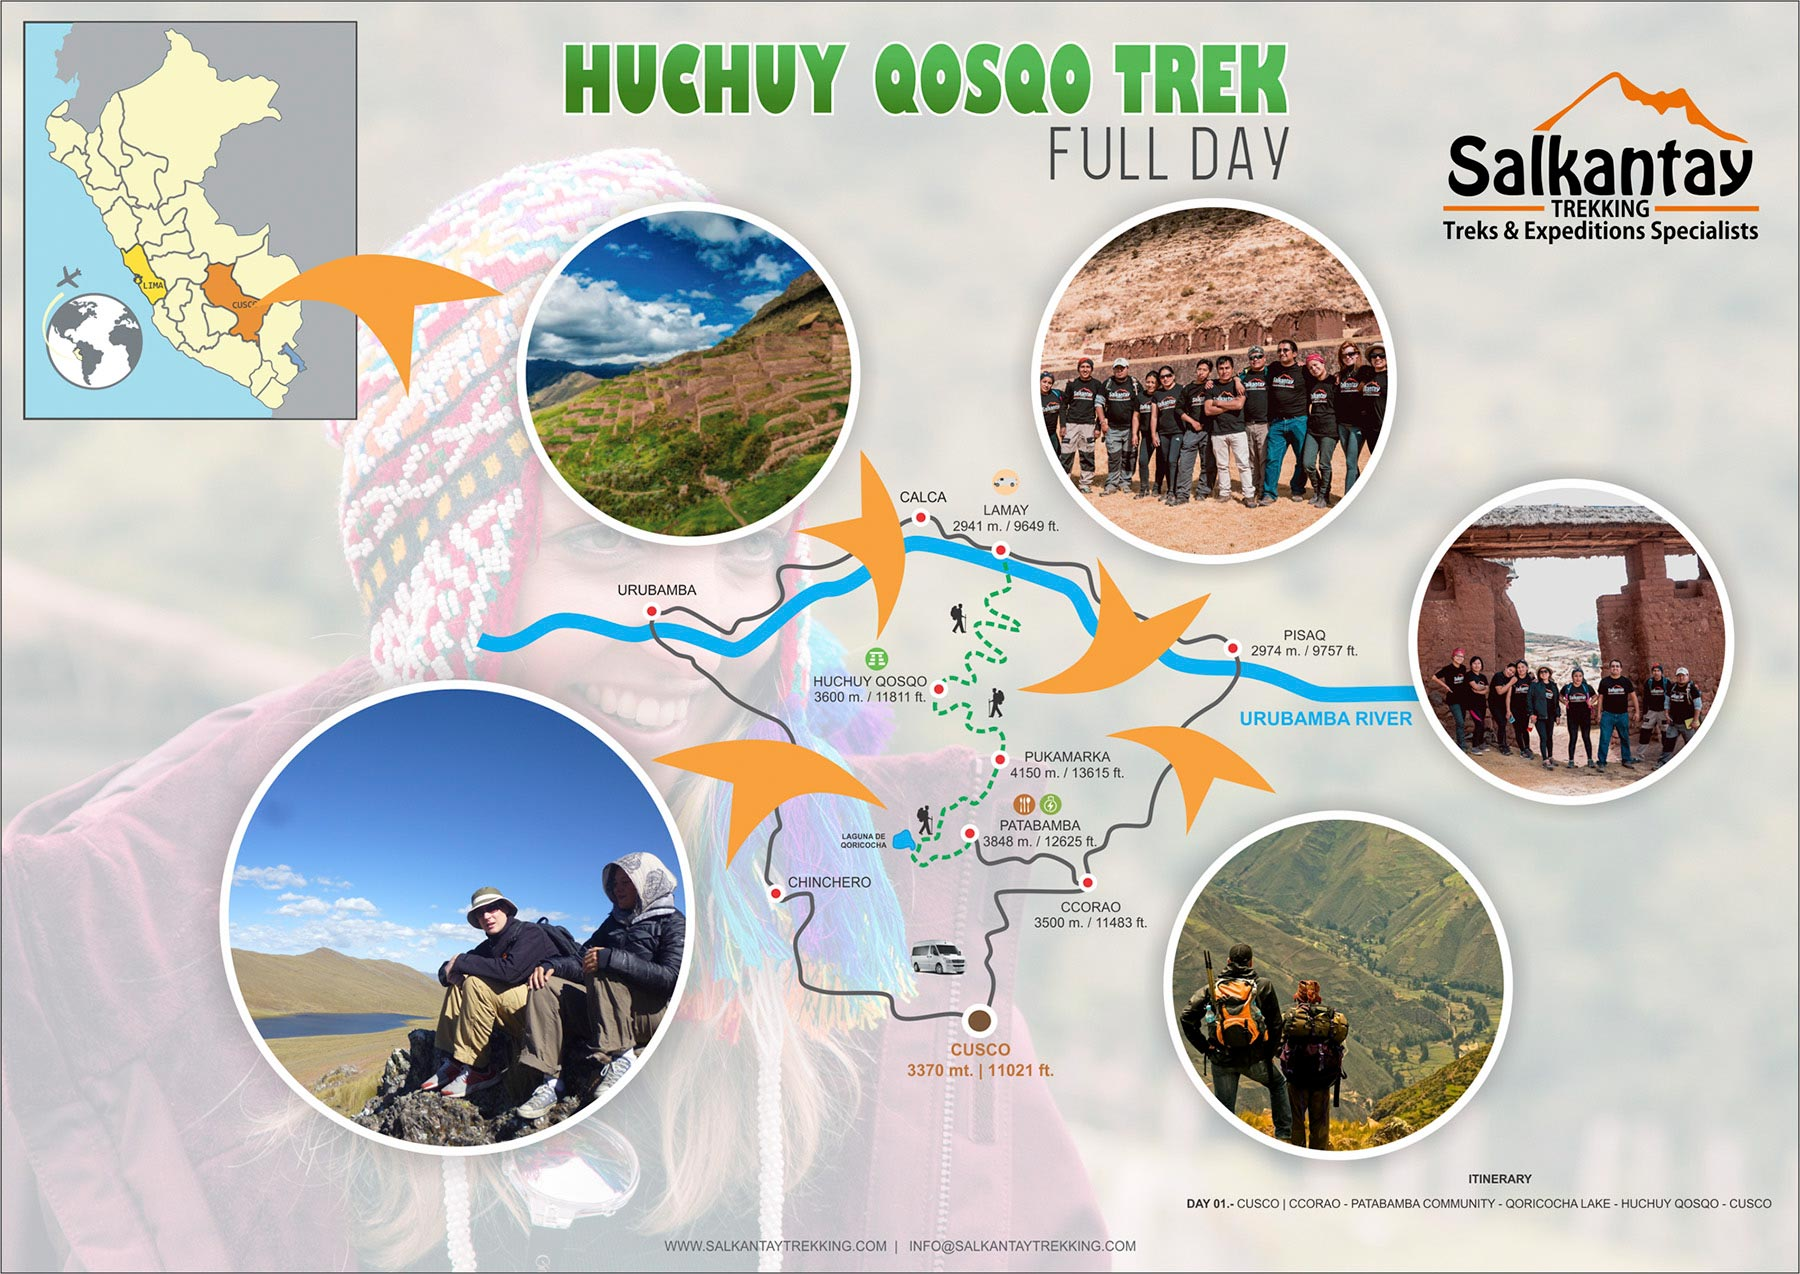 Huchuy Qosqo Trek map and itinerary